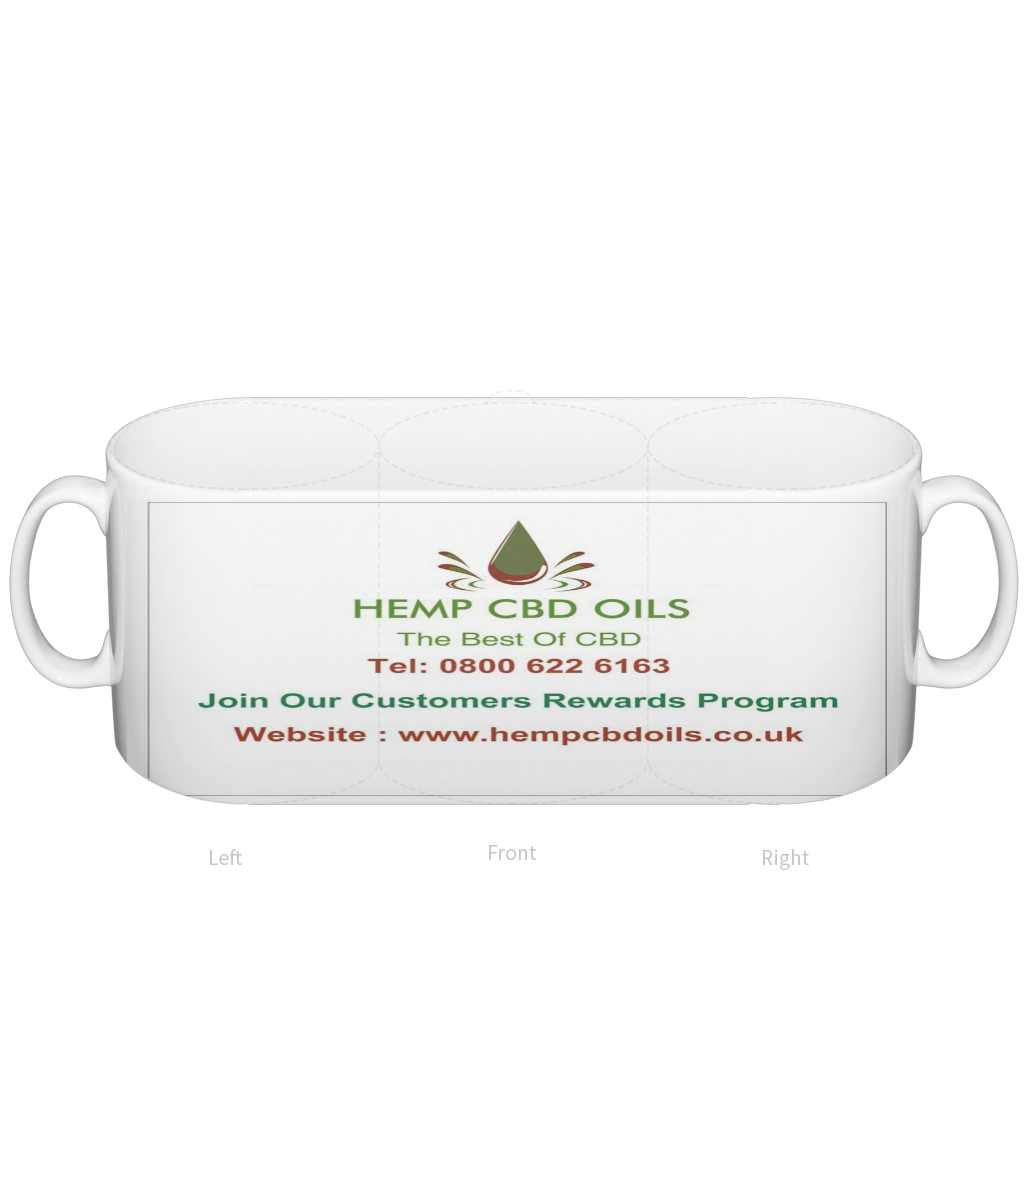 HEMP CBD OILS Mug (9173307211)